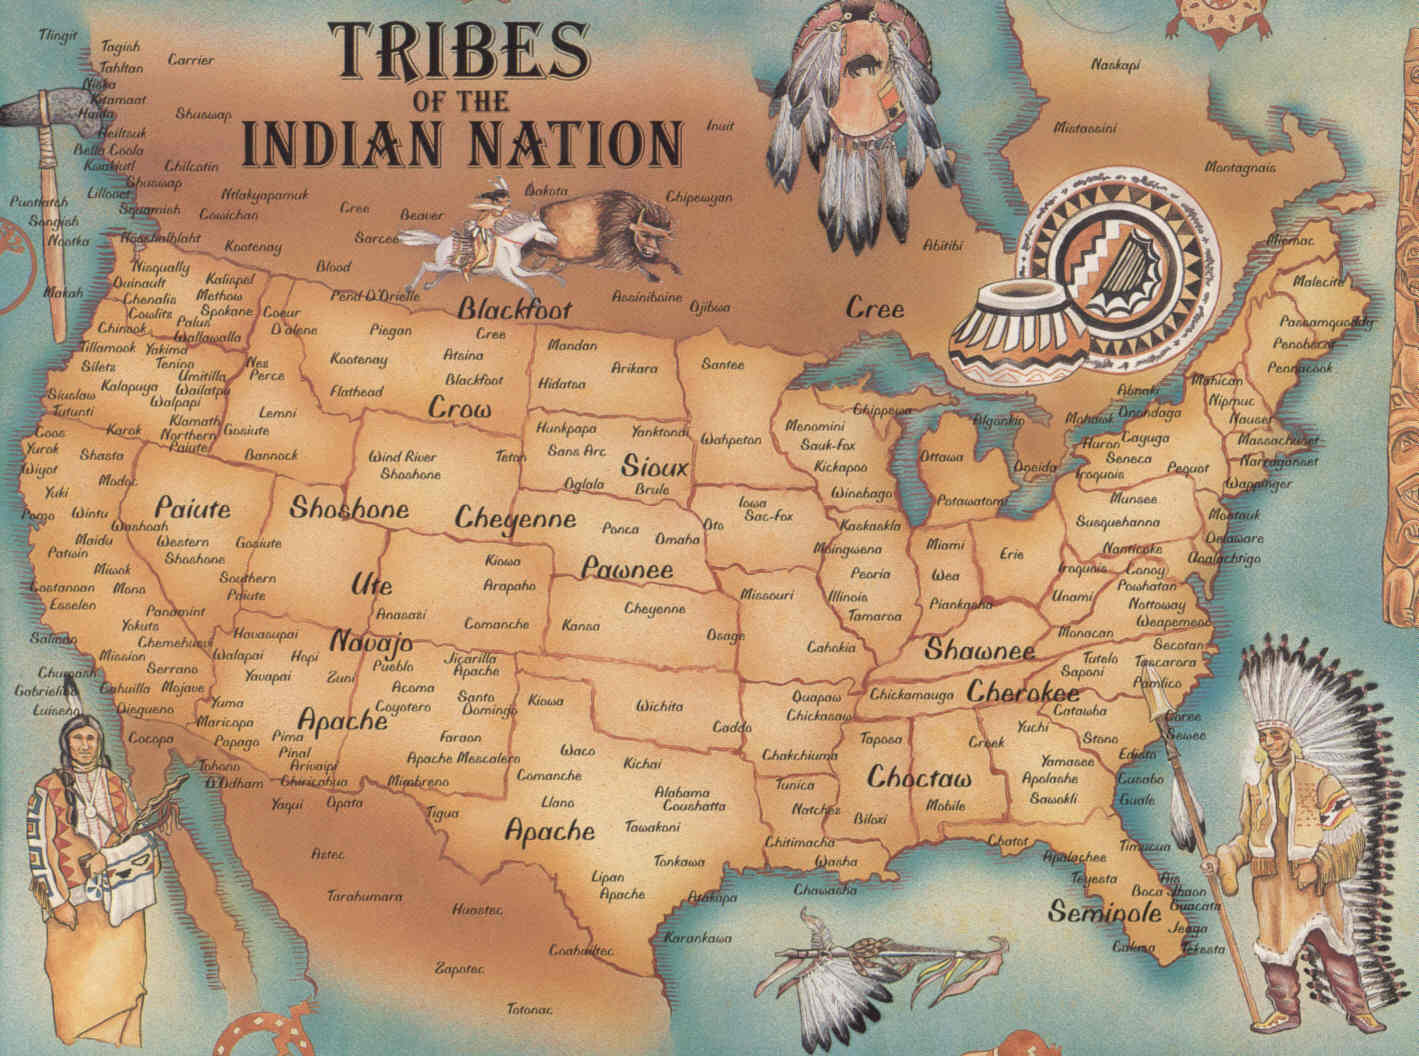 Tribes of the Indian Nation Map See map details From www.aaanativearts ...